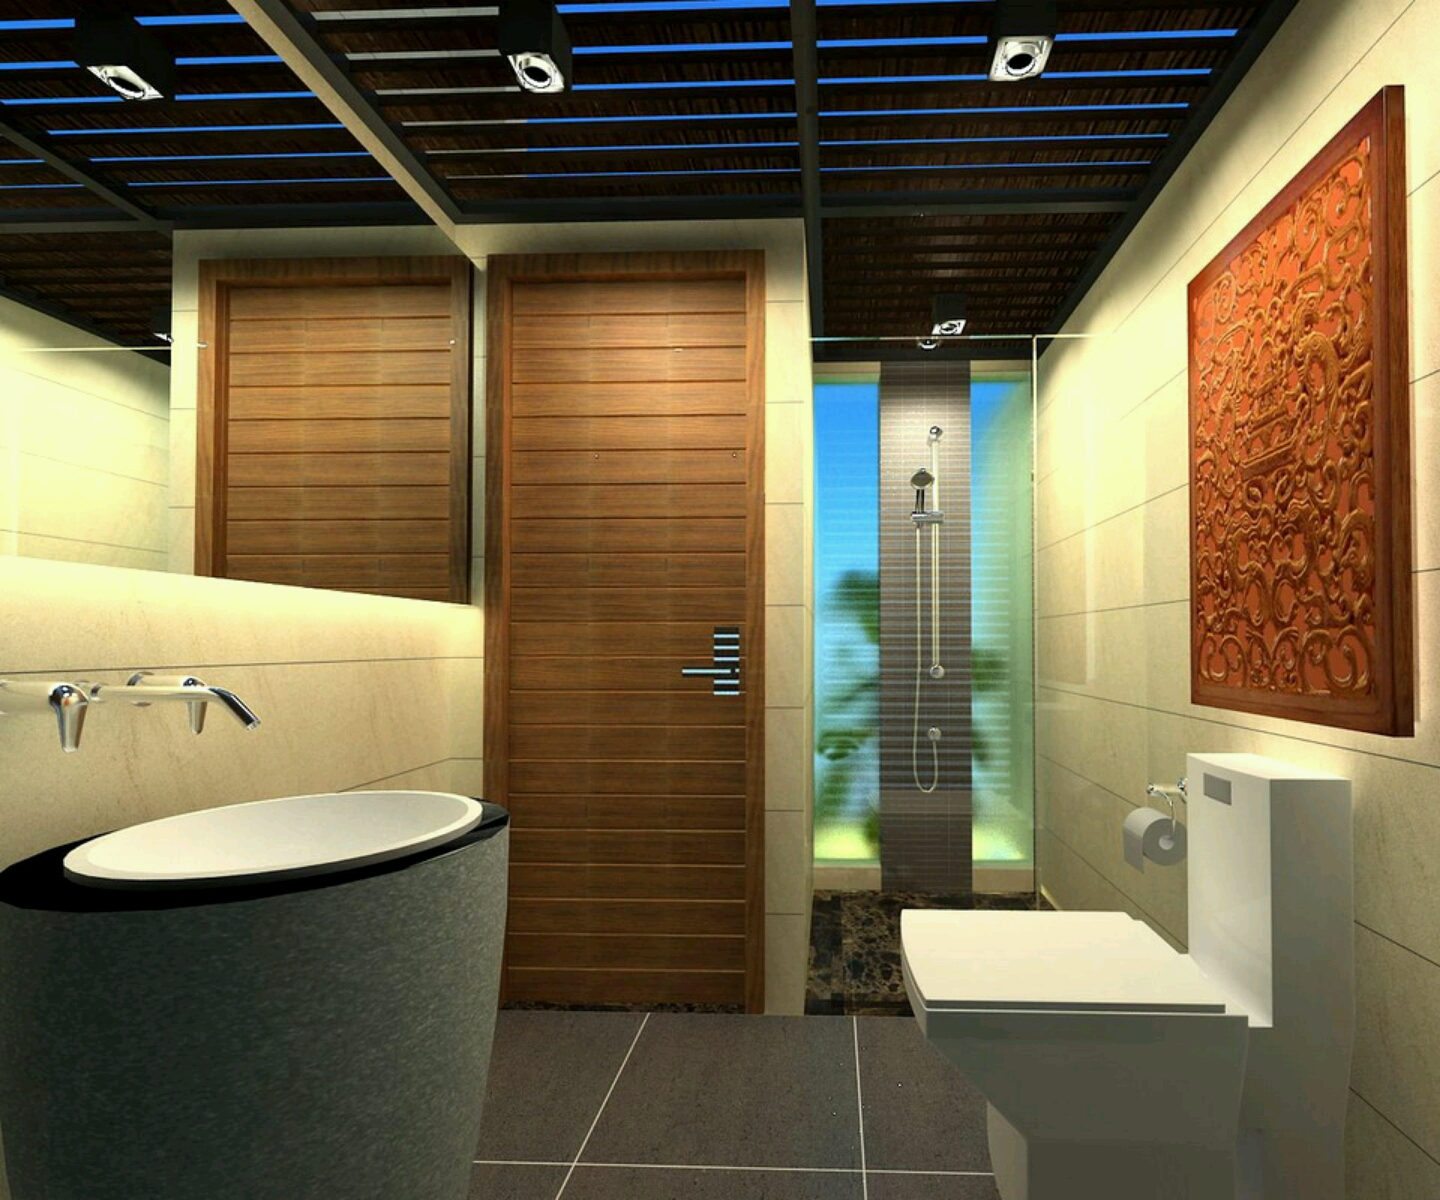 Home Design Ideas Bathroom: New Home Designs Latest.: Modern Homes Modern Bathrooms